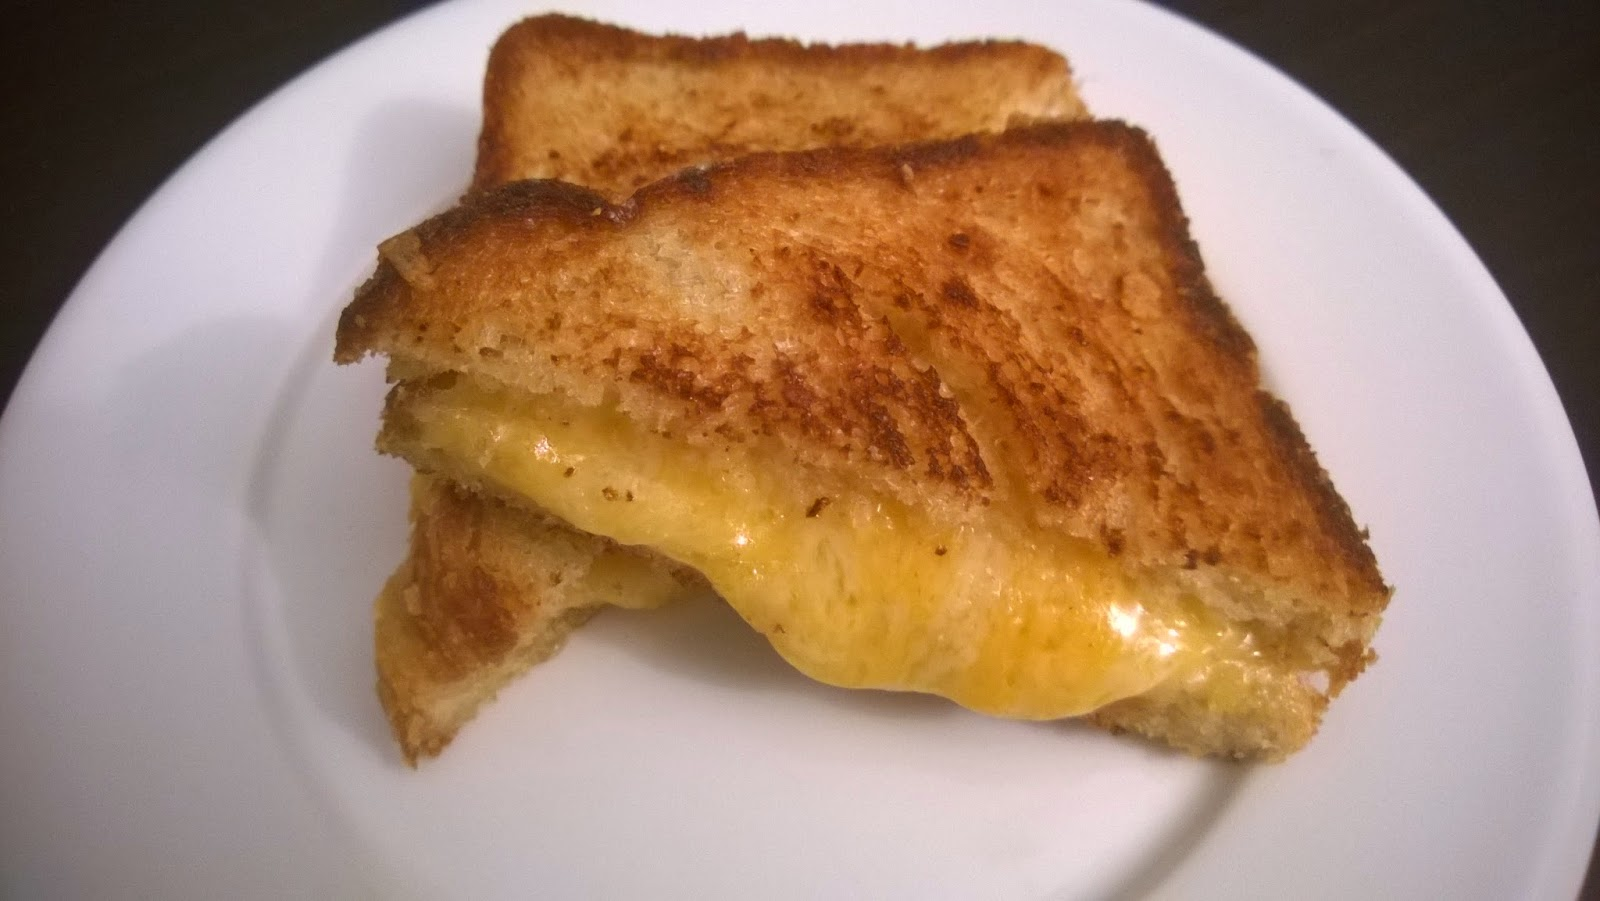 Grilled cheese